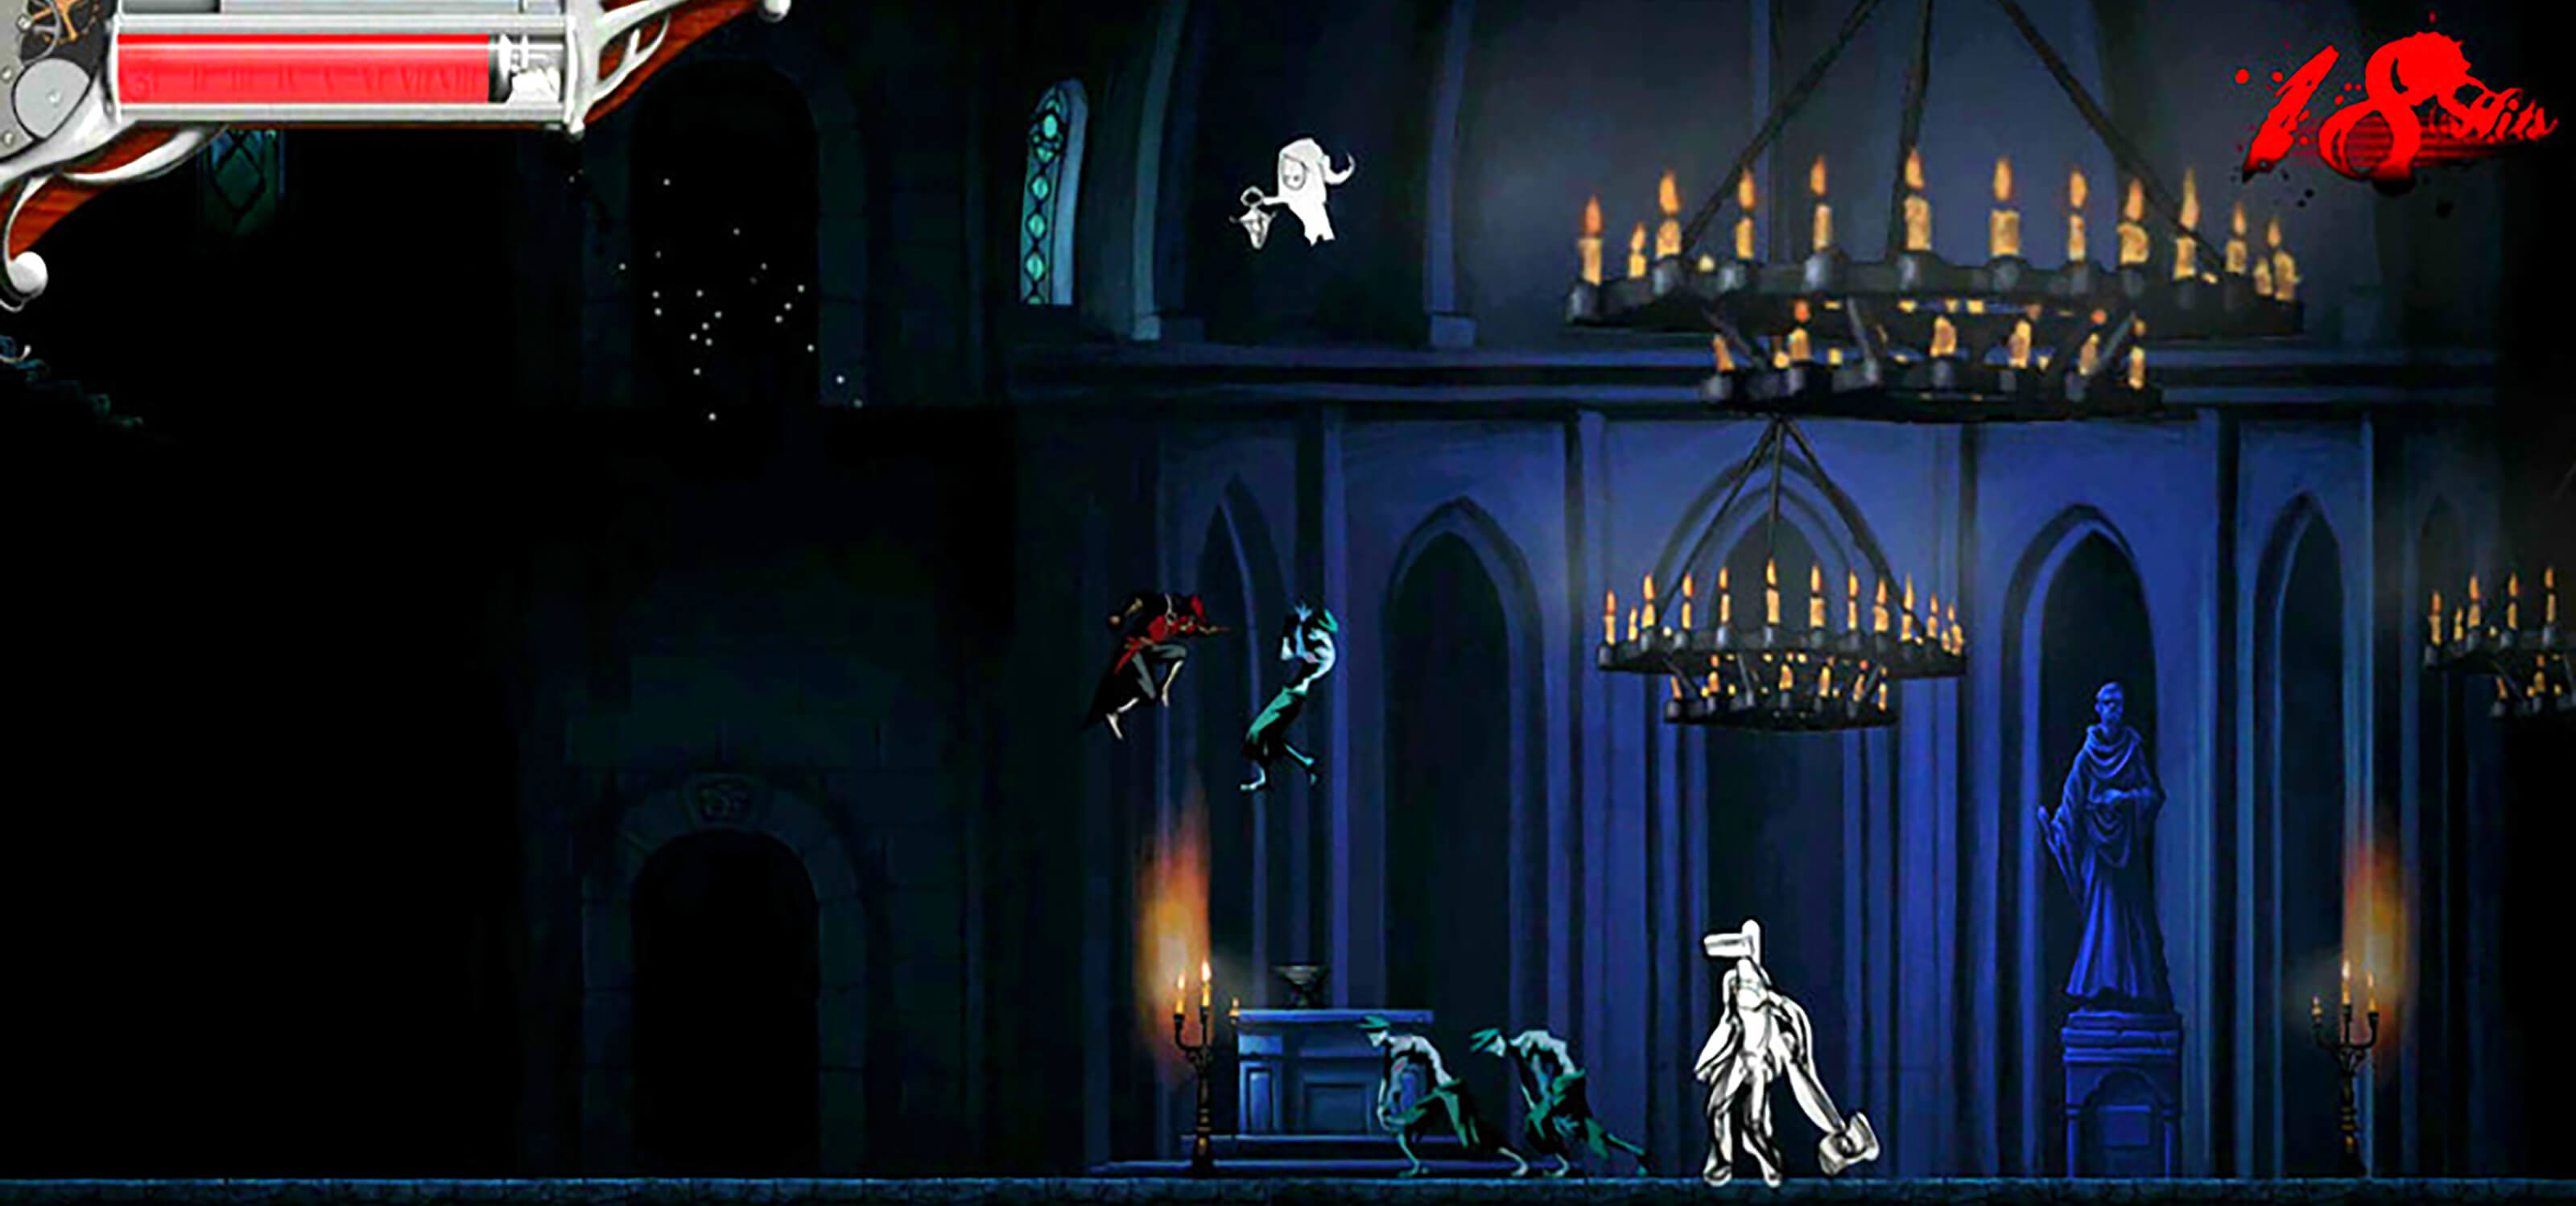 A swordsman in red fights a green zombie in midair in a spooky church